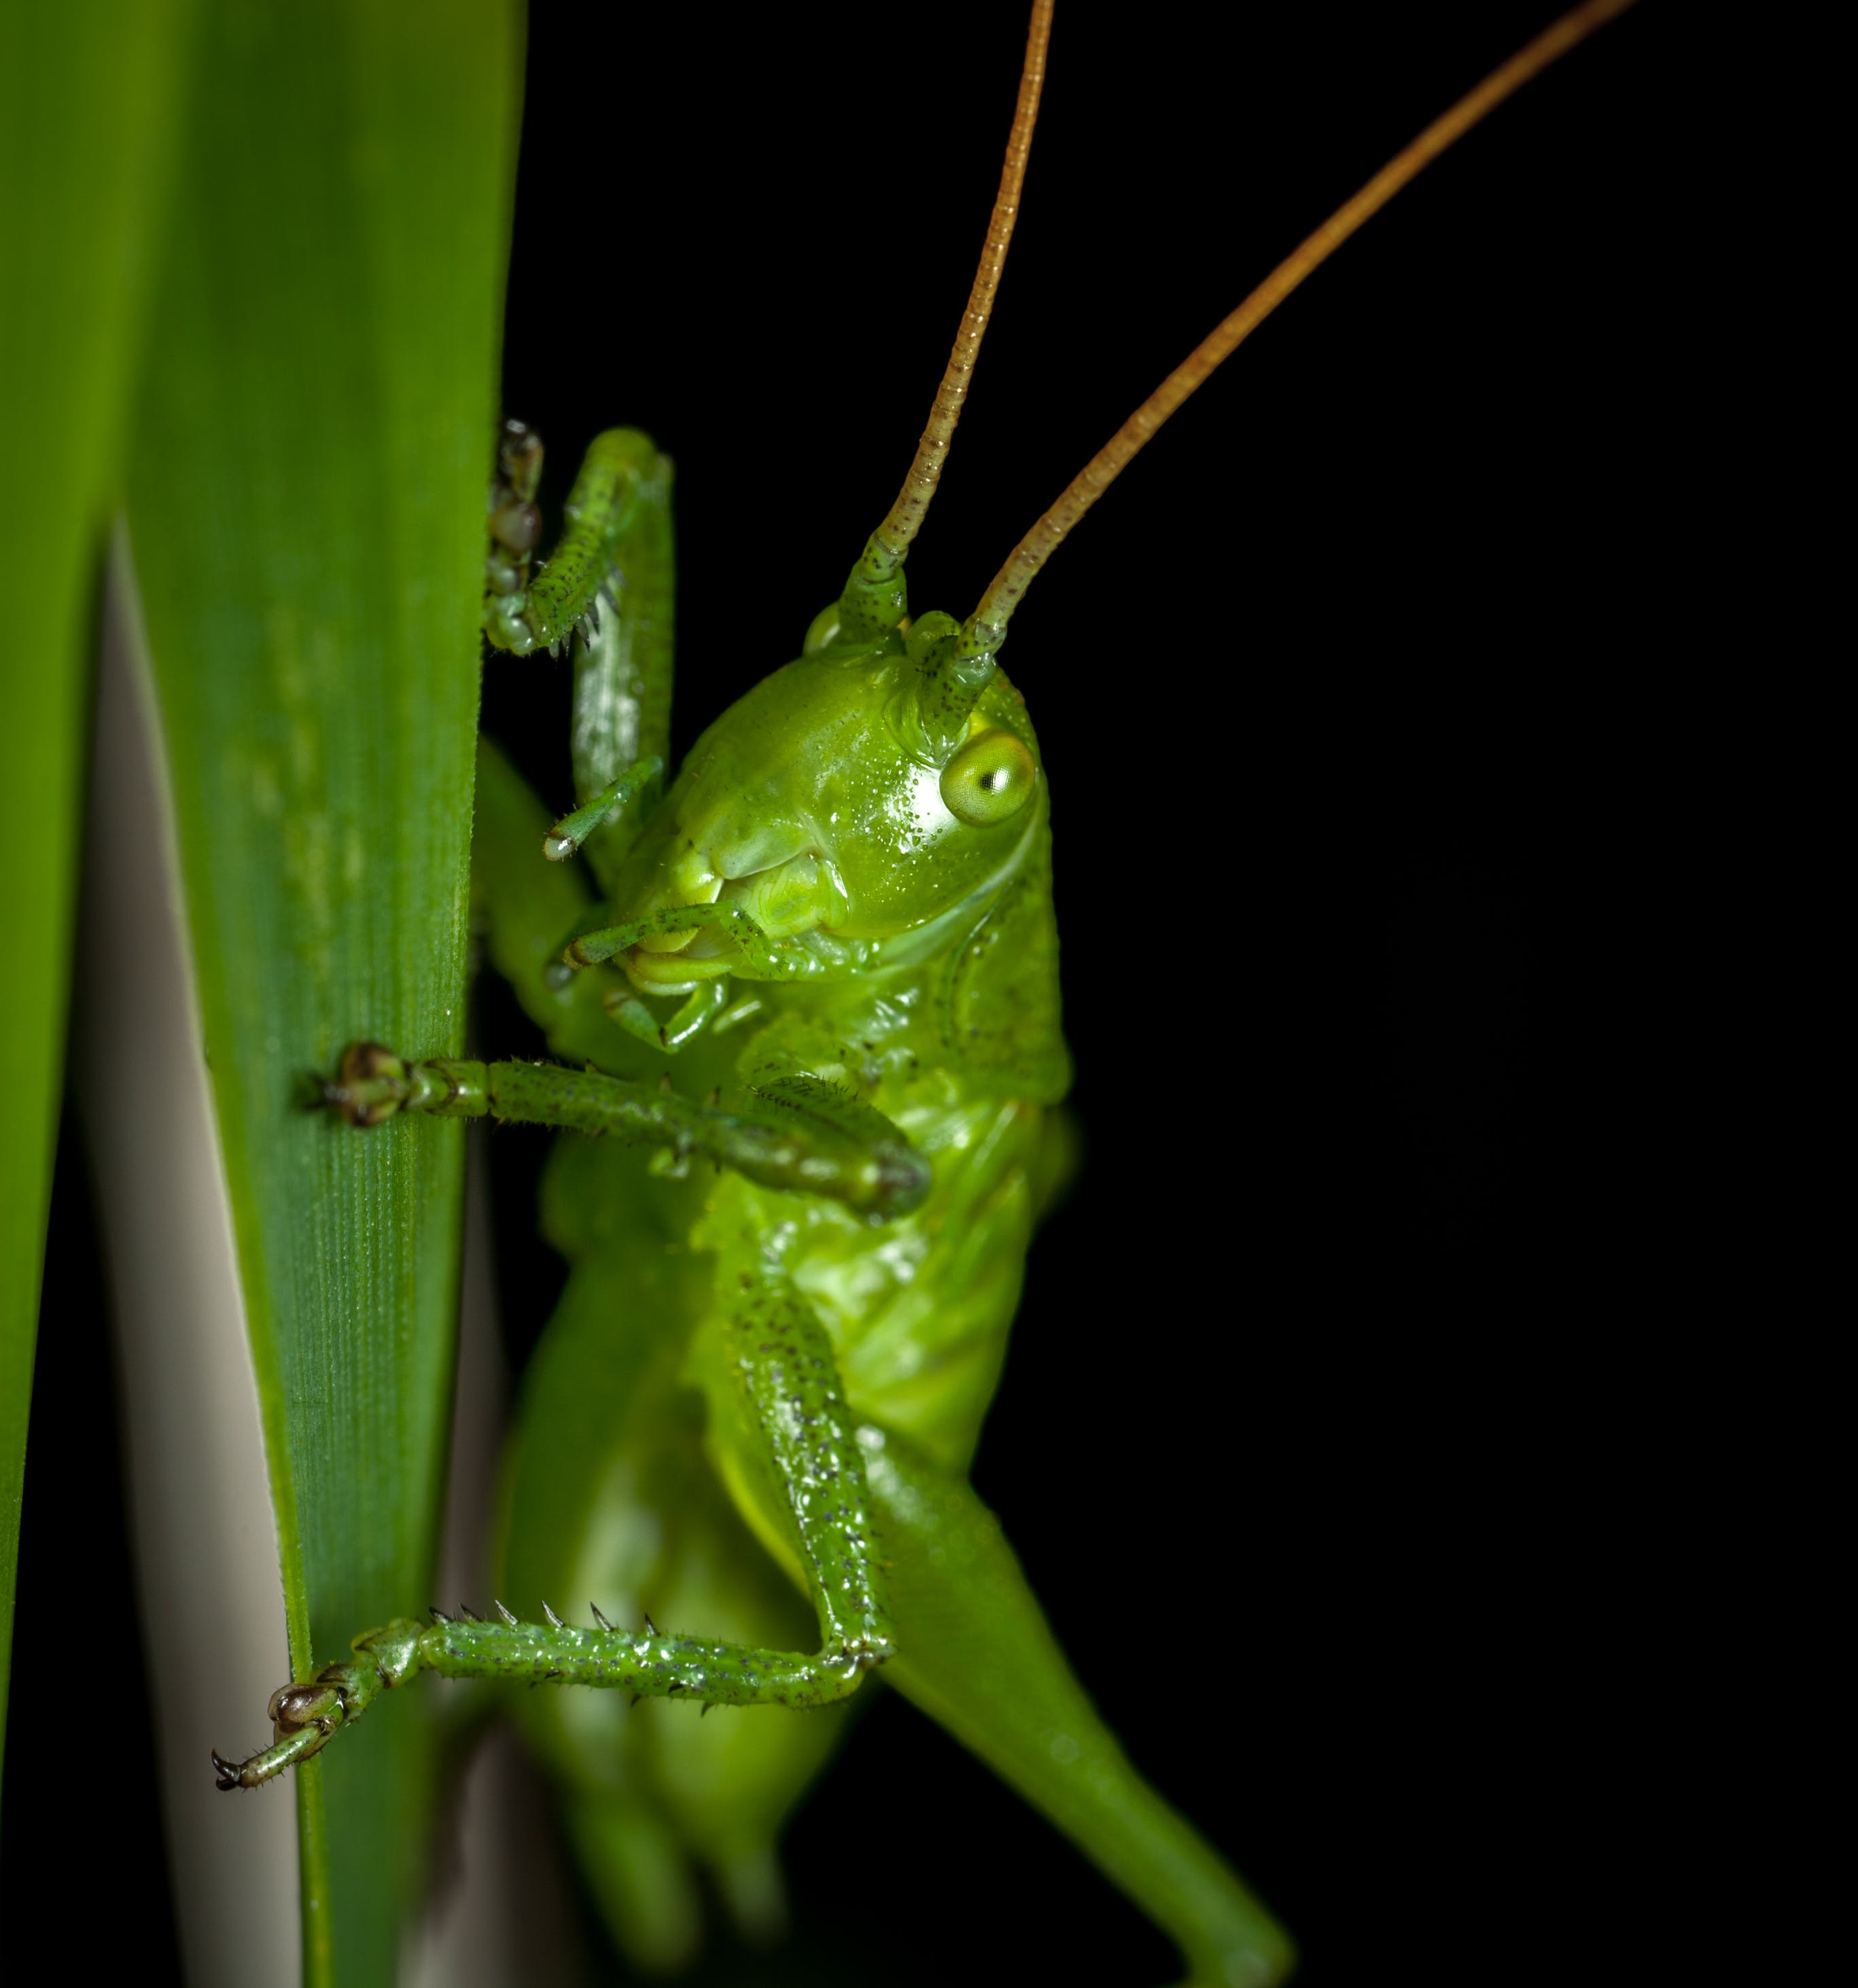 Close-up Photography of Grasshopper Perched on Green Leaf